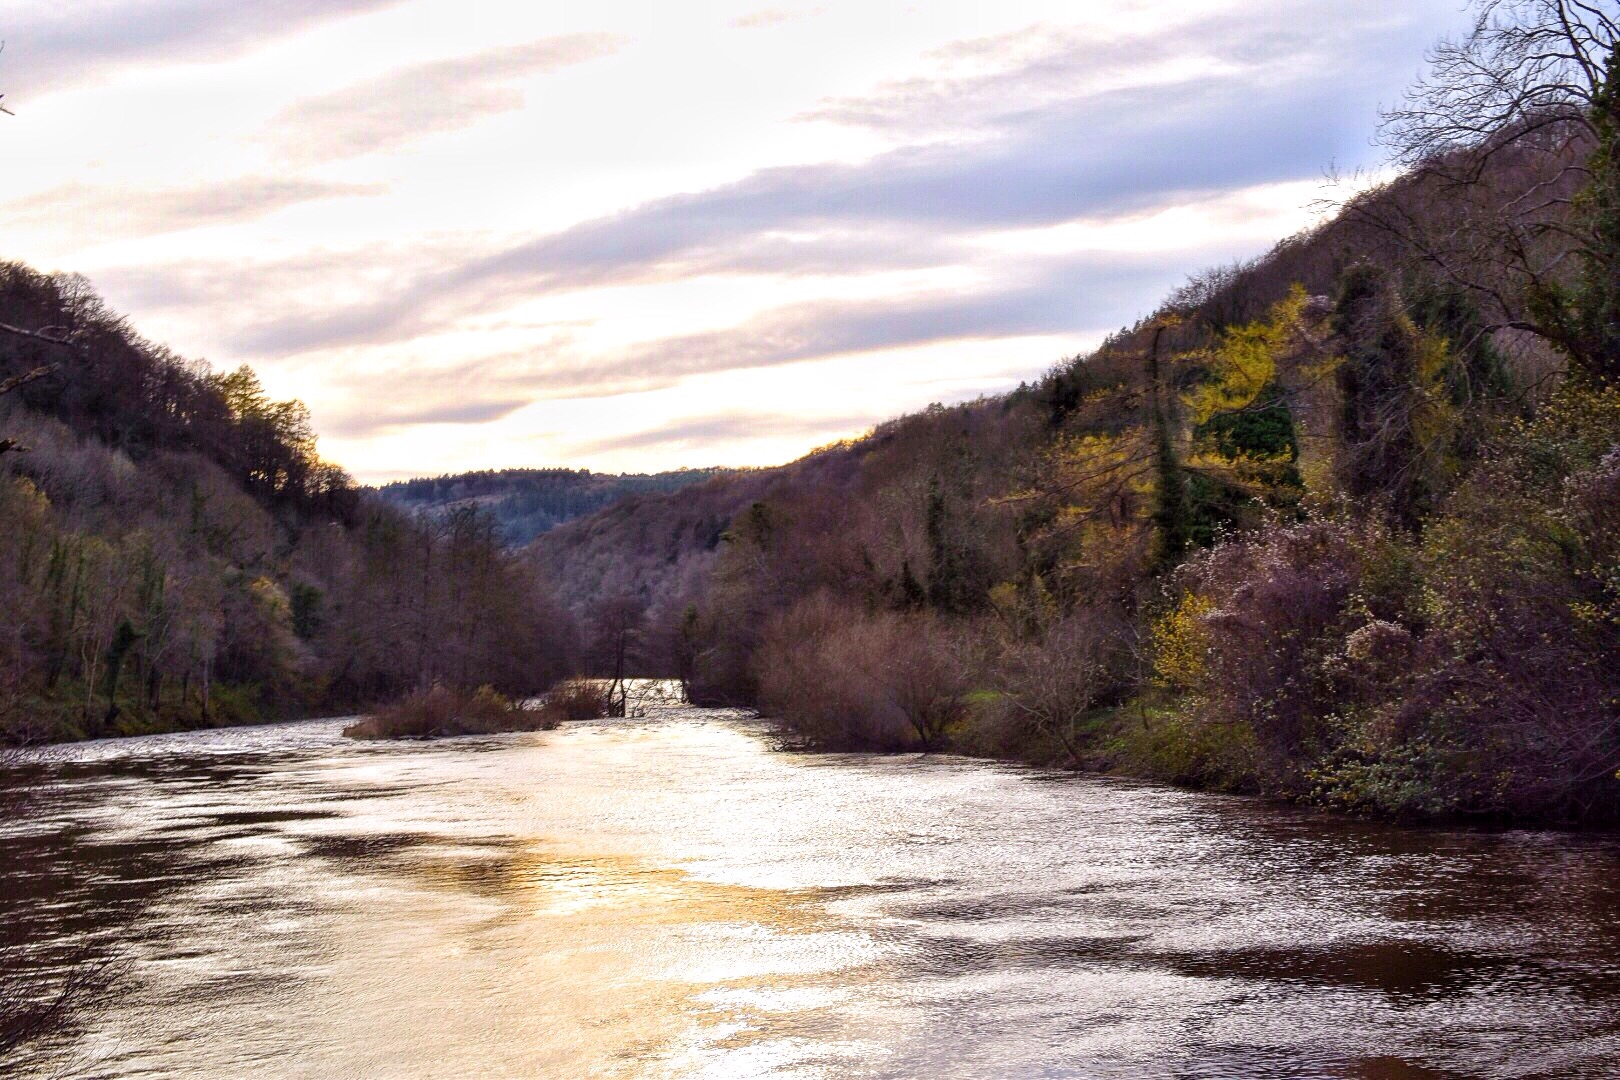 Symonds Yat in the Forest of Dean, England late Autumn.